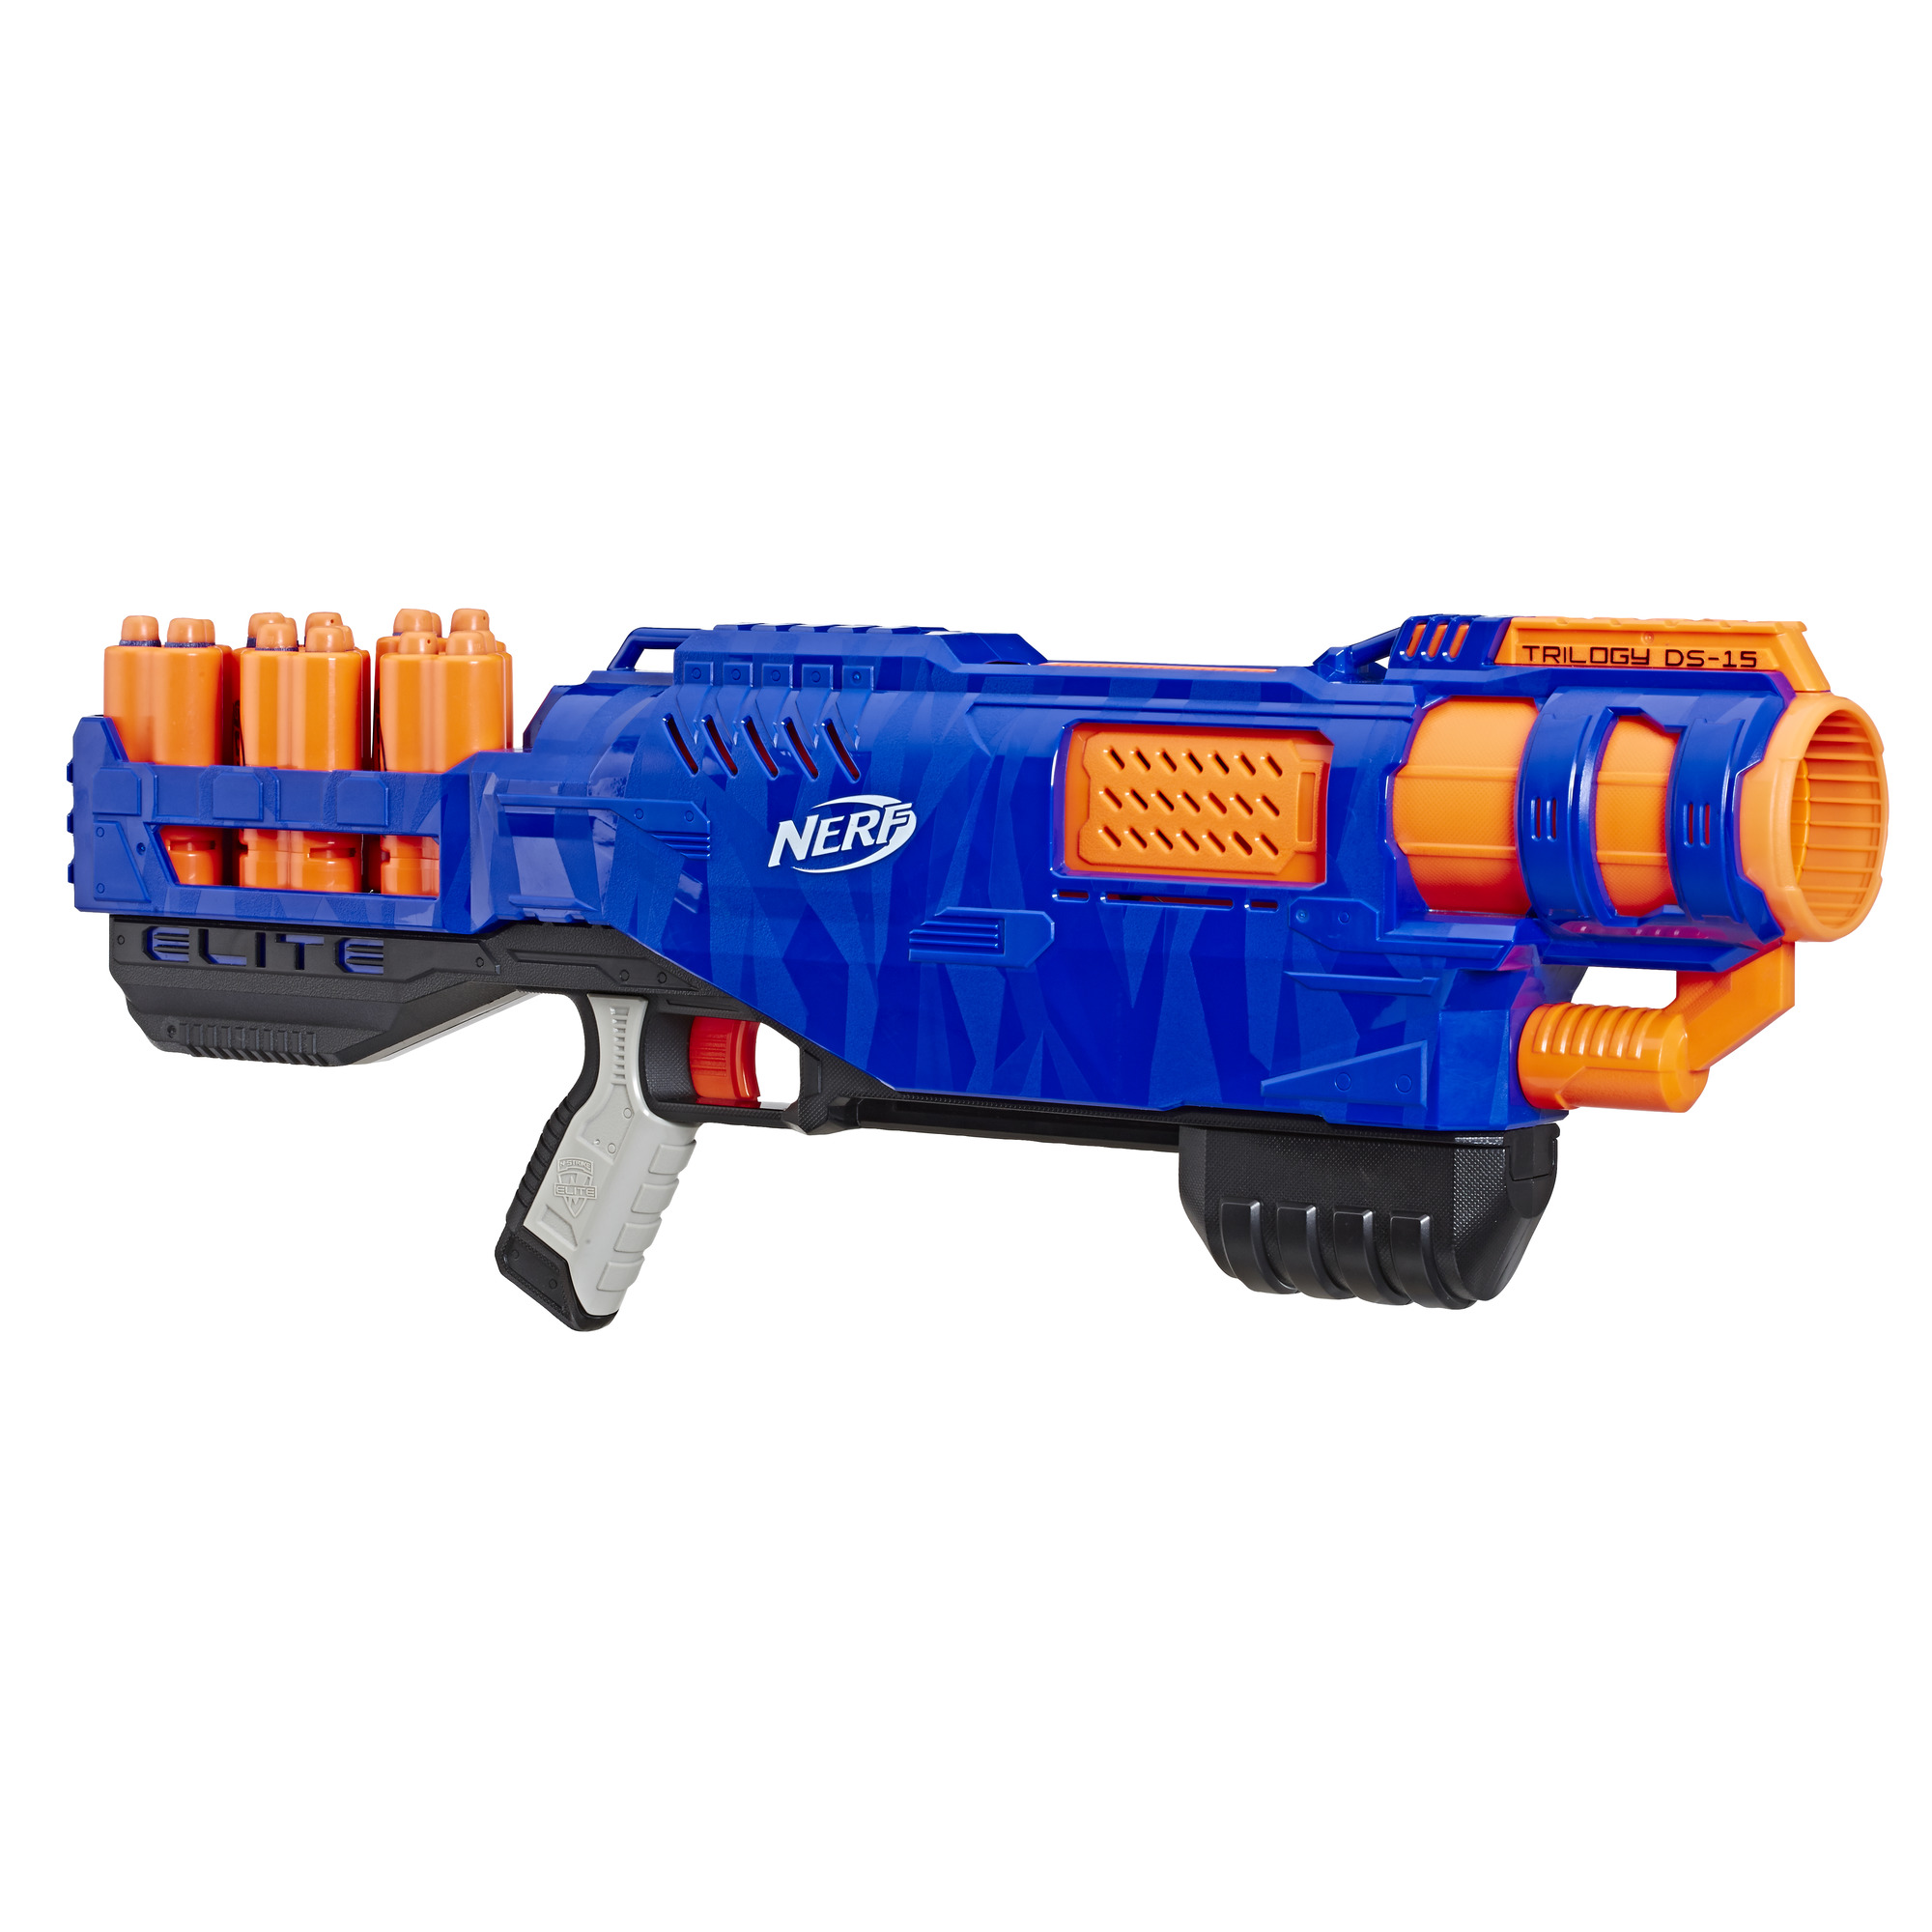 Nerf Blaster-best gifts for kids